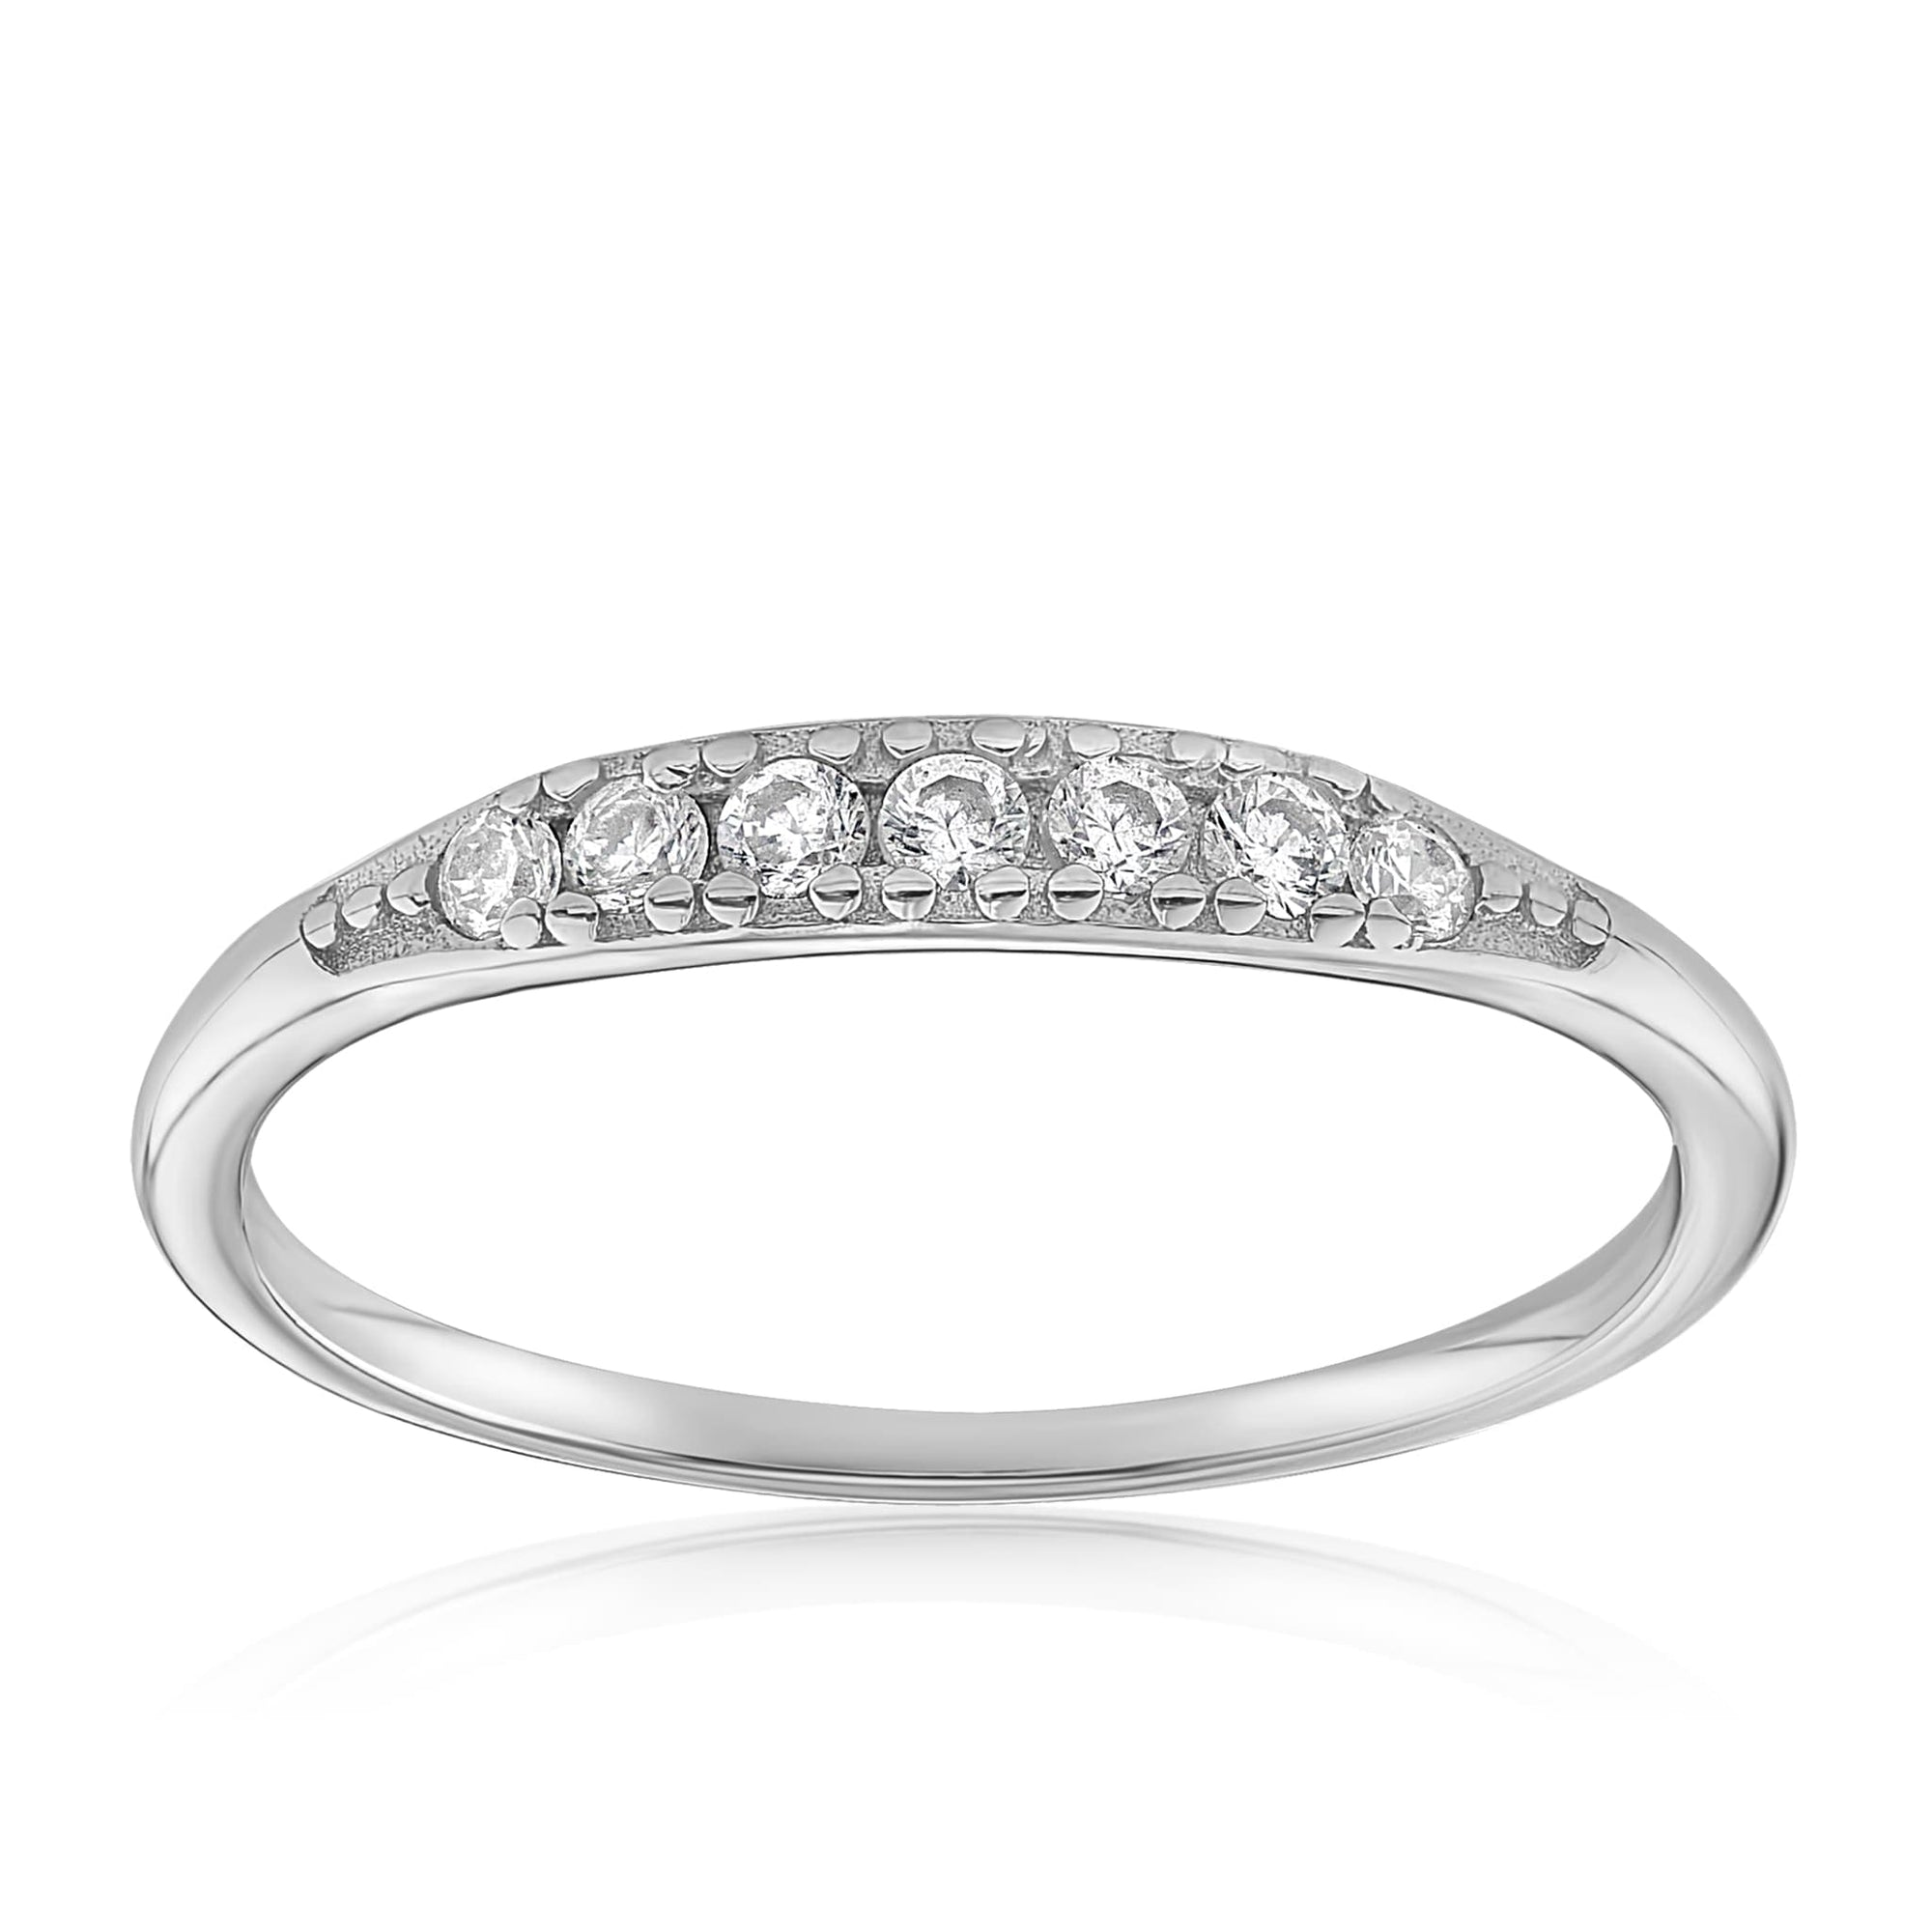 Kathleen Stack Ring - Front View Facing Up - 925 Sterling Silver